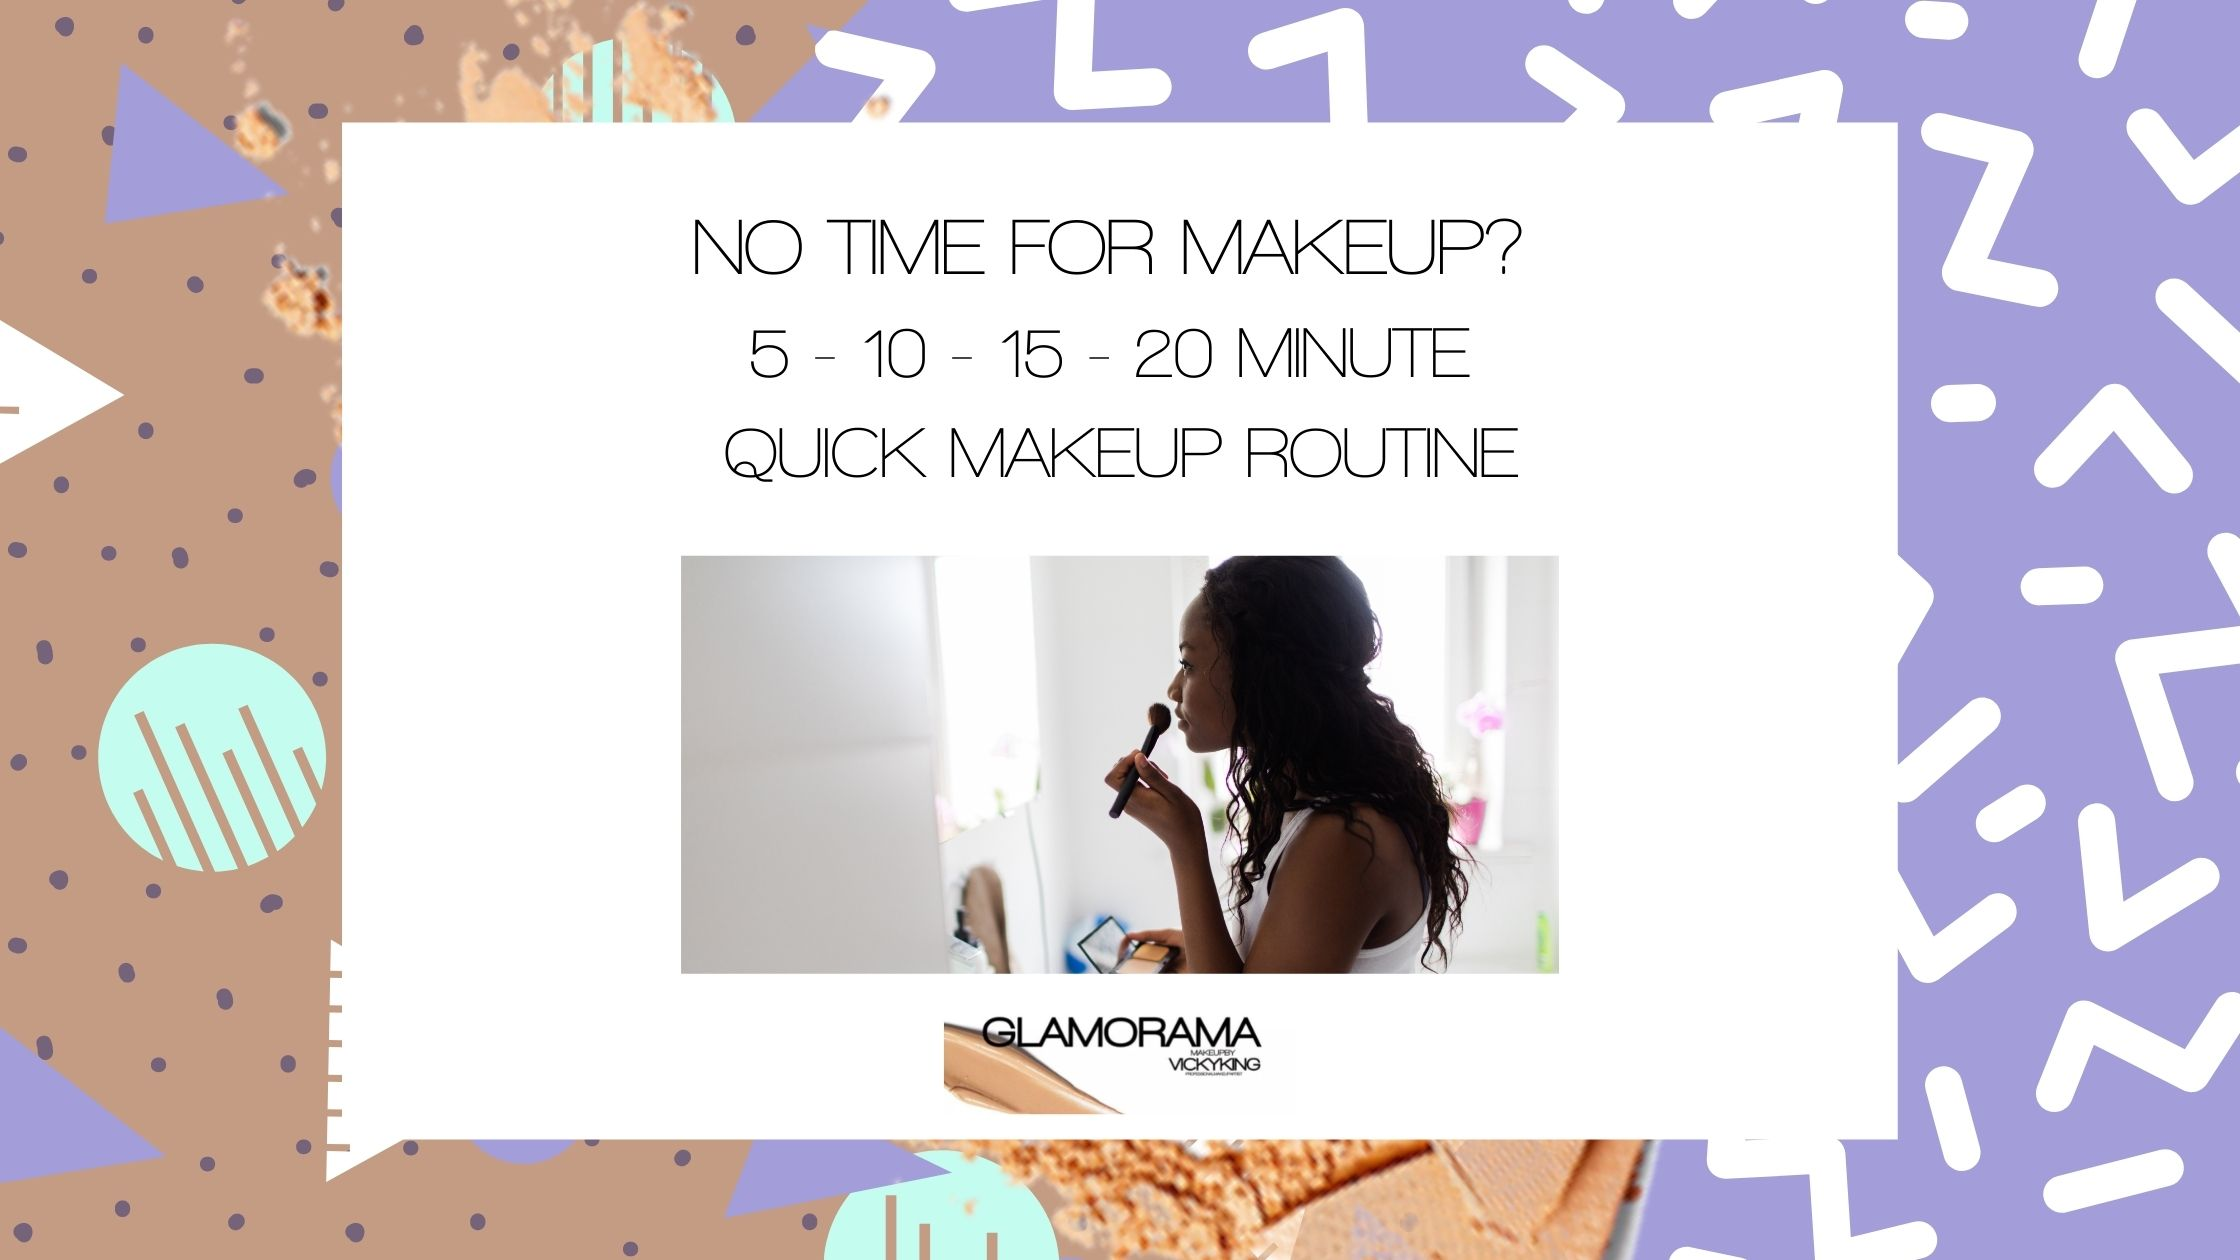 No time for makeup? 5 - 10 - 15 - 20 Minute Quick Makeup Routine